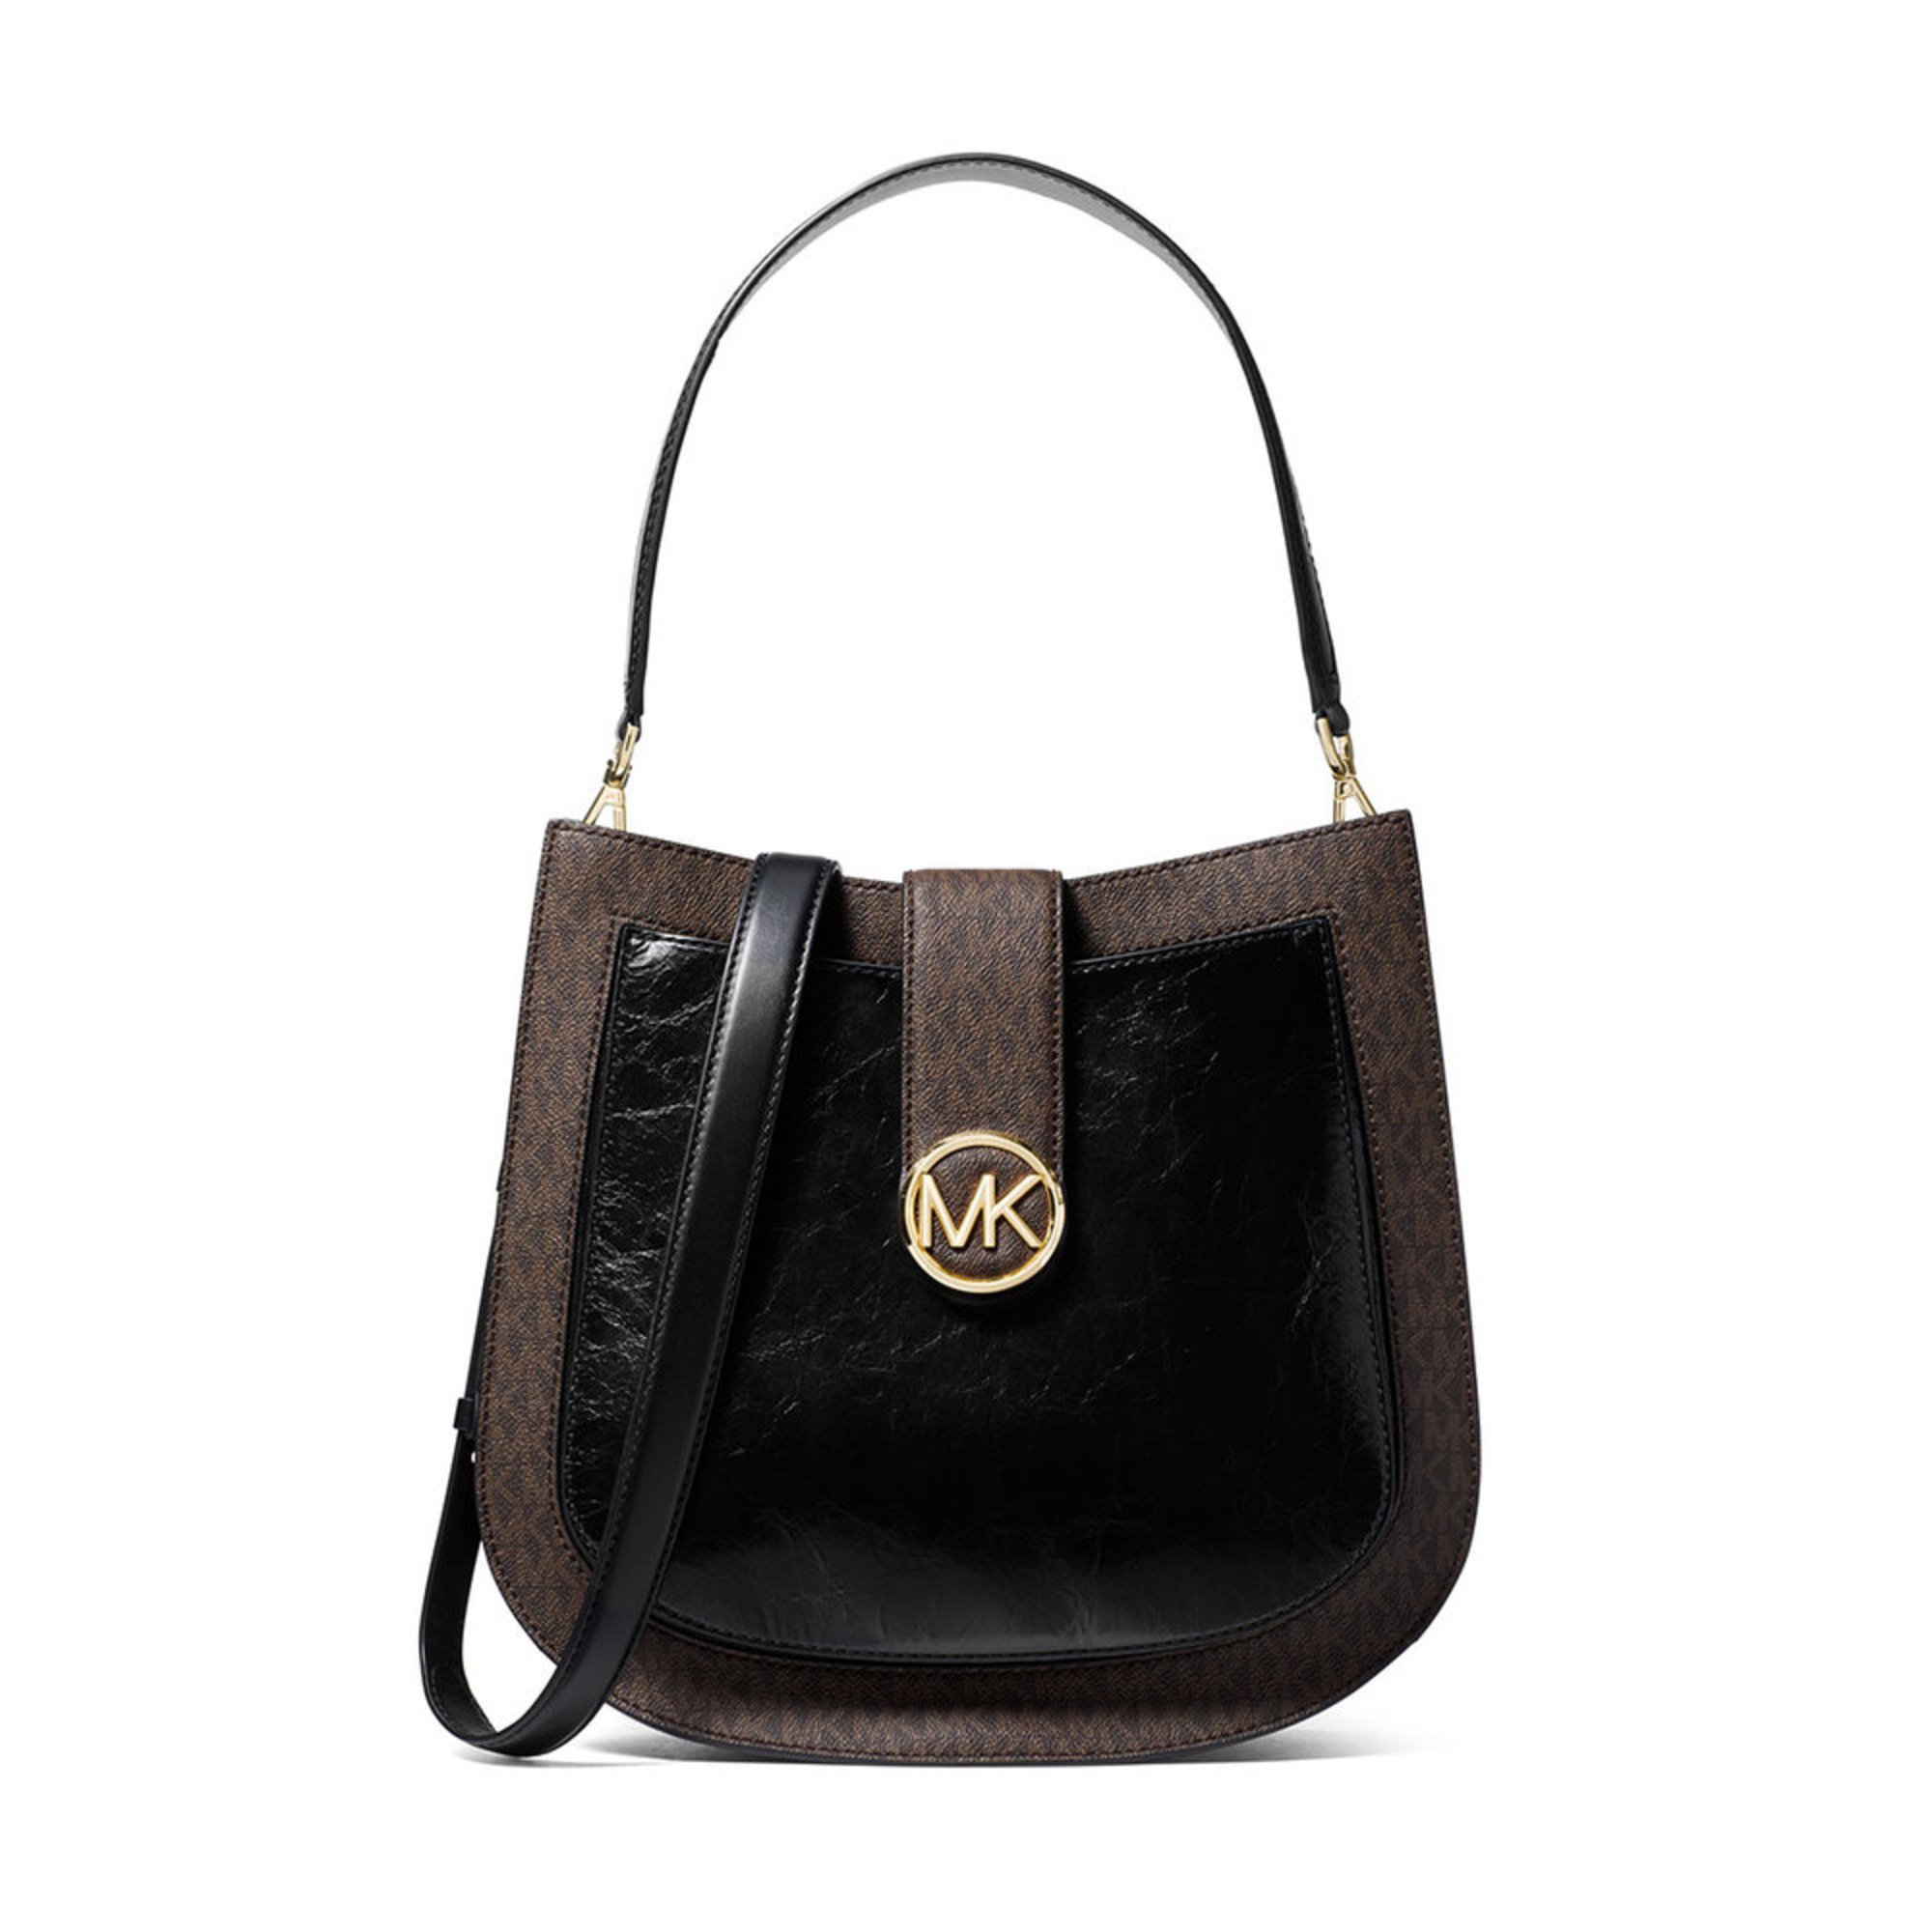 a10a779d3844a Michael Kors Lillie Large Hobo Messenger